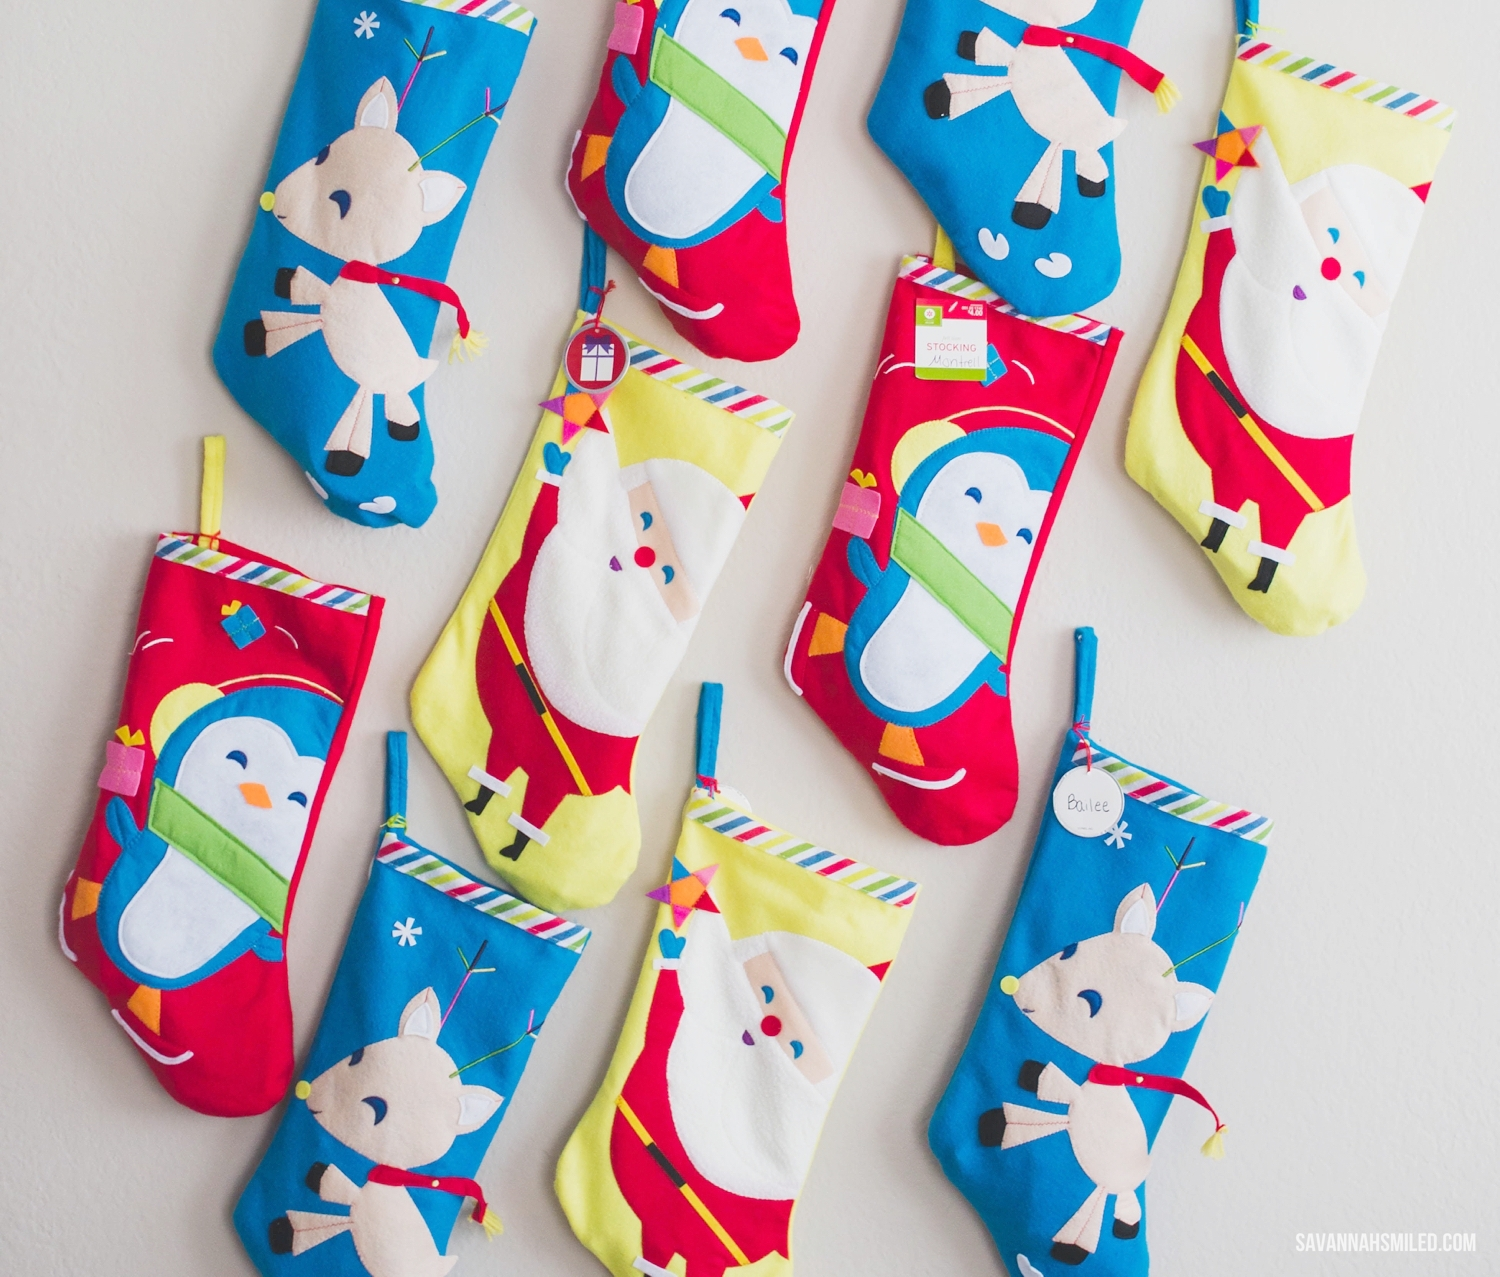 christmas-stockings-extended-family-tradition-2.jpg